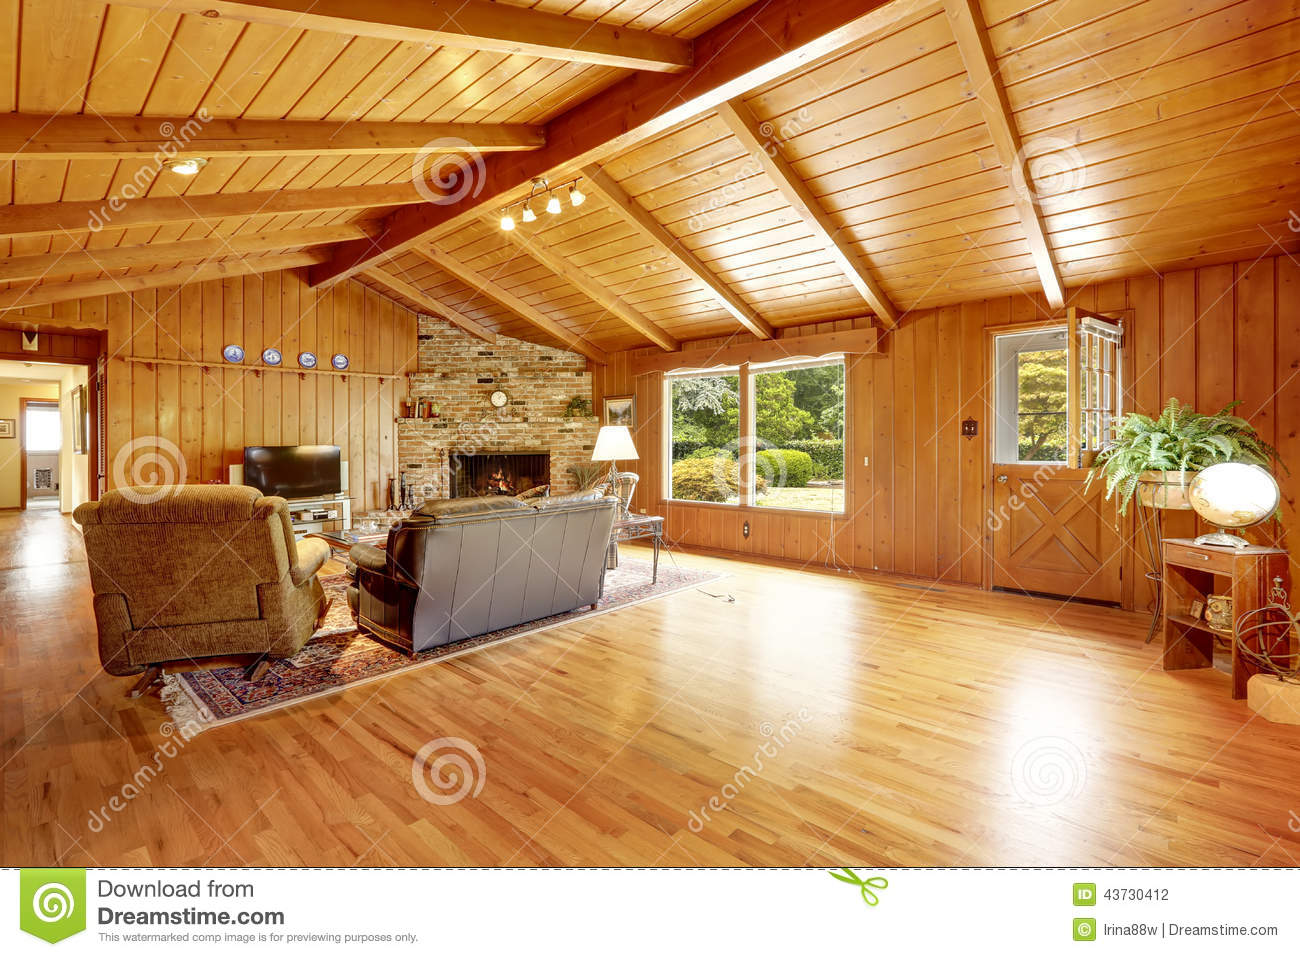 Cabin interior fireplace - Log Cabin House Interior Living Room With Fireplace And Leather